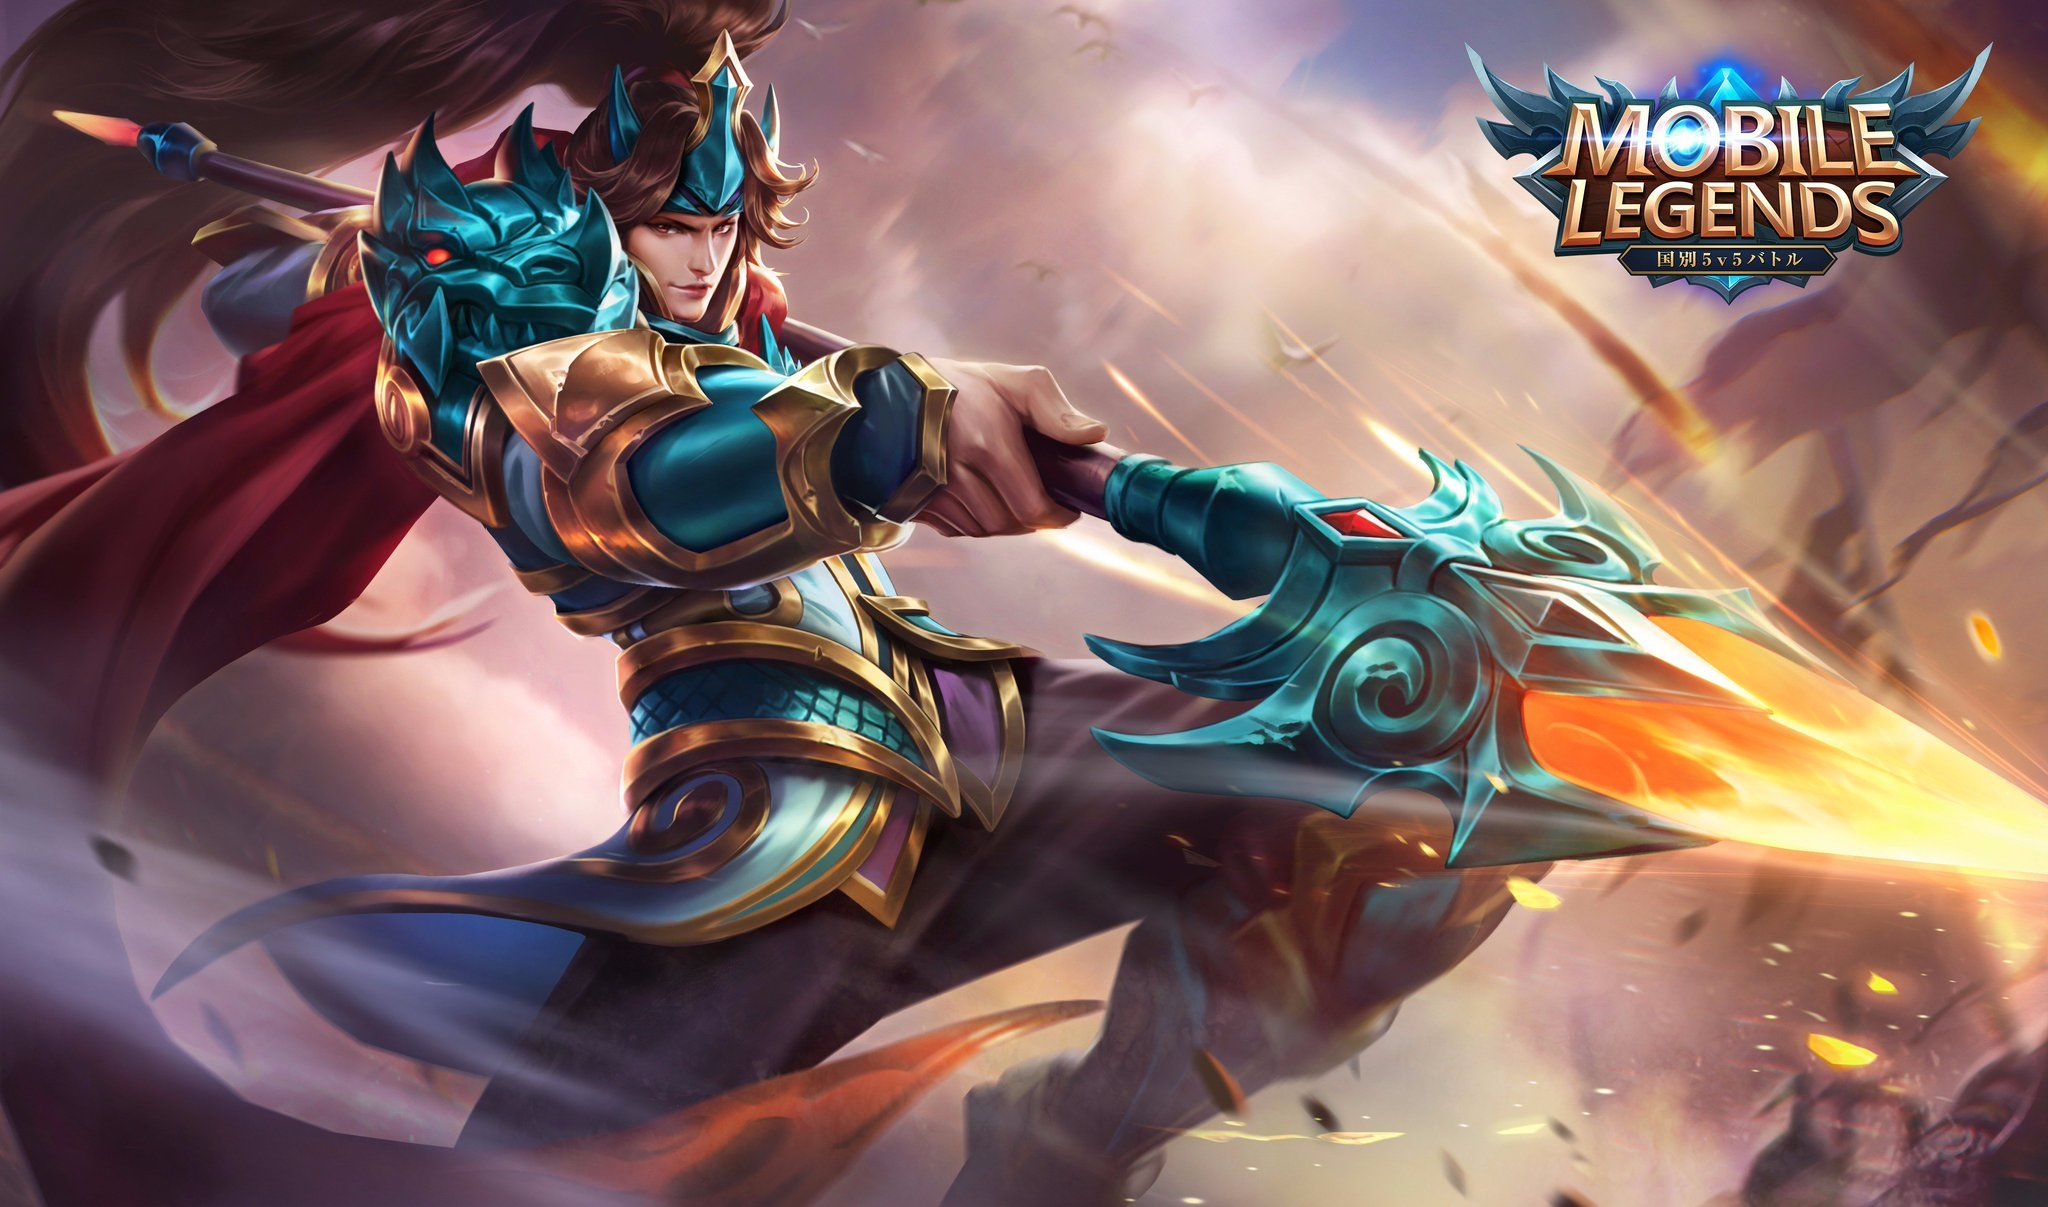 45 Wallpaper HD Mobile Legends Terbaru, Download sekarang ...